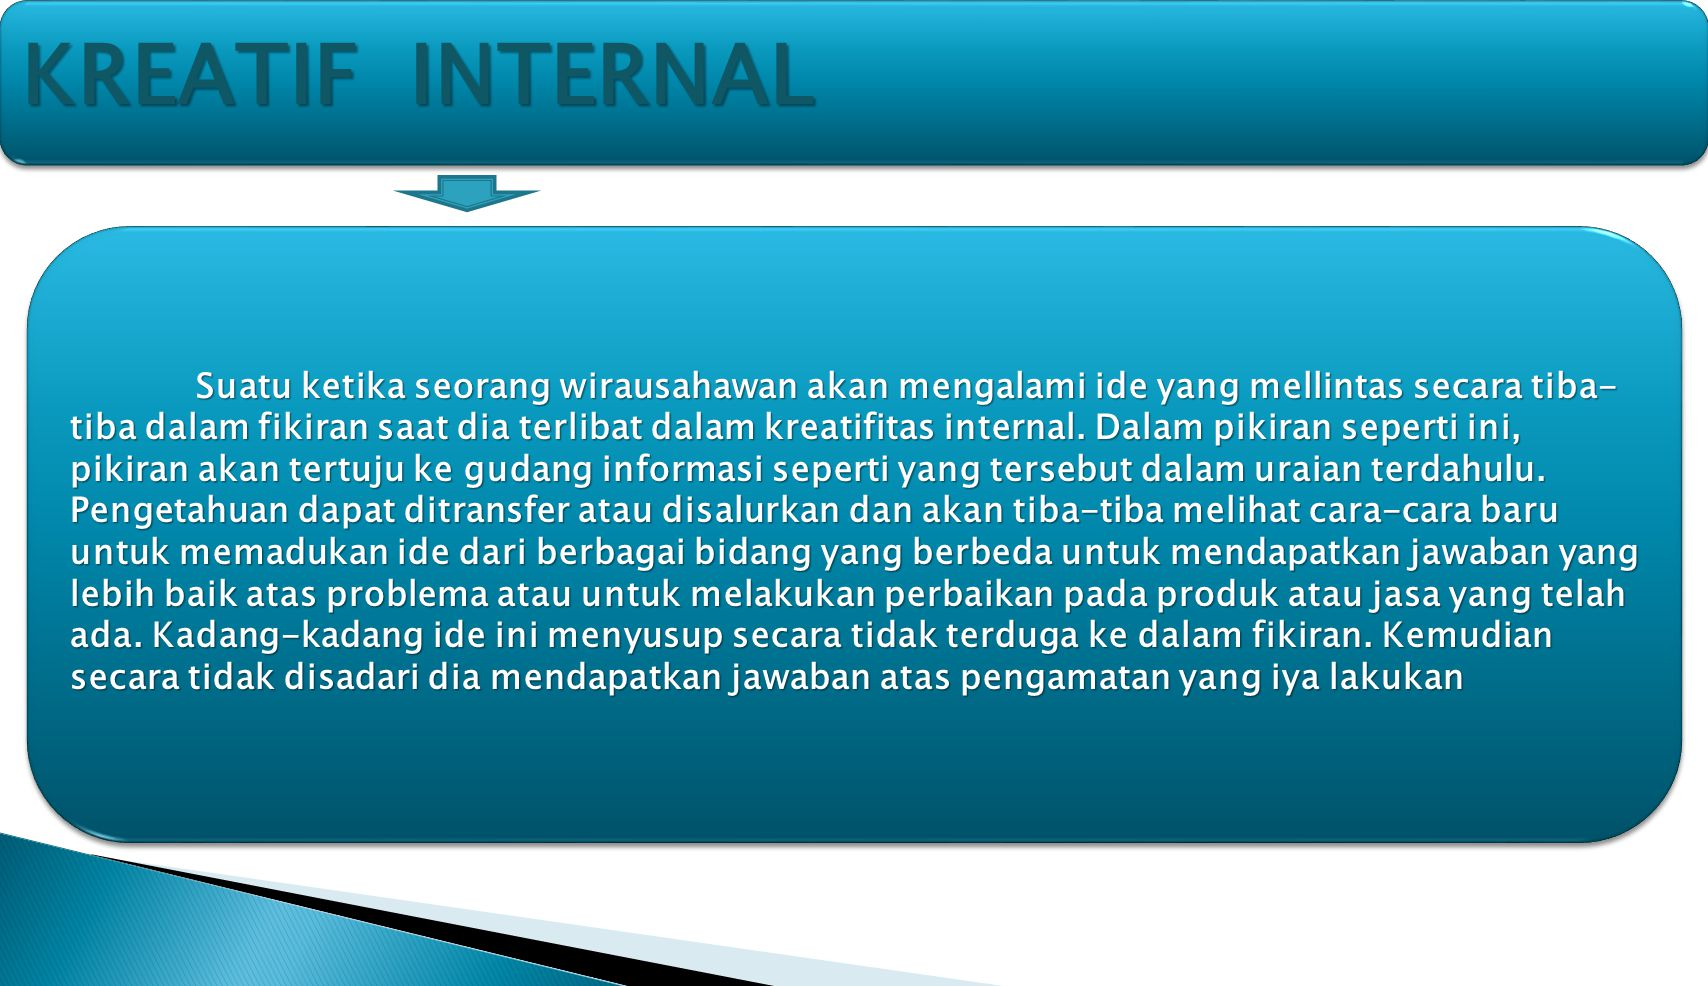 KreatiF internal